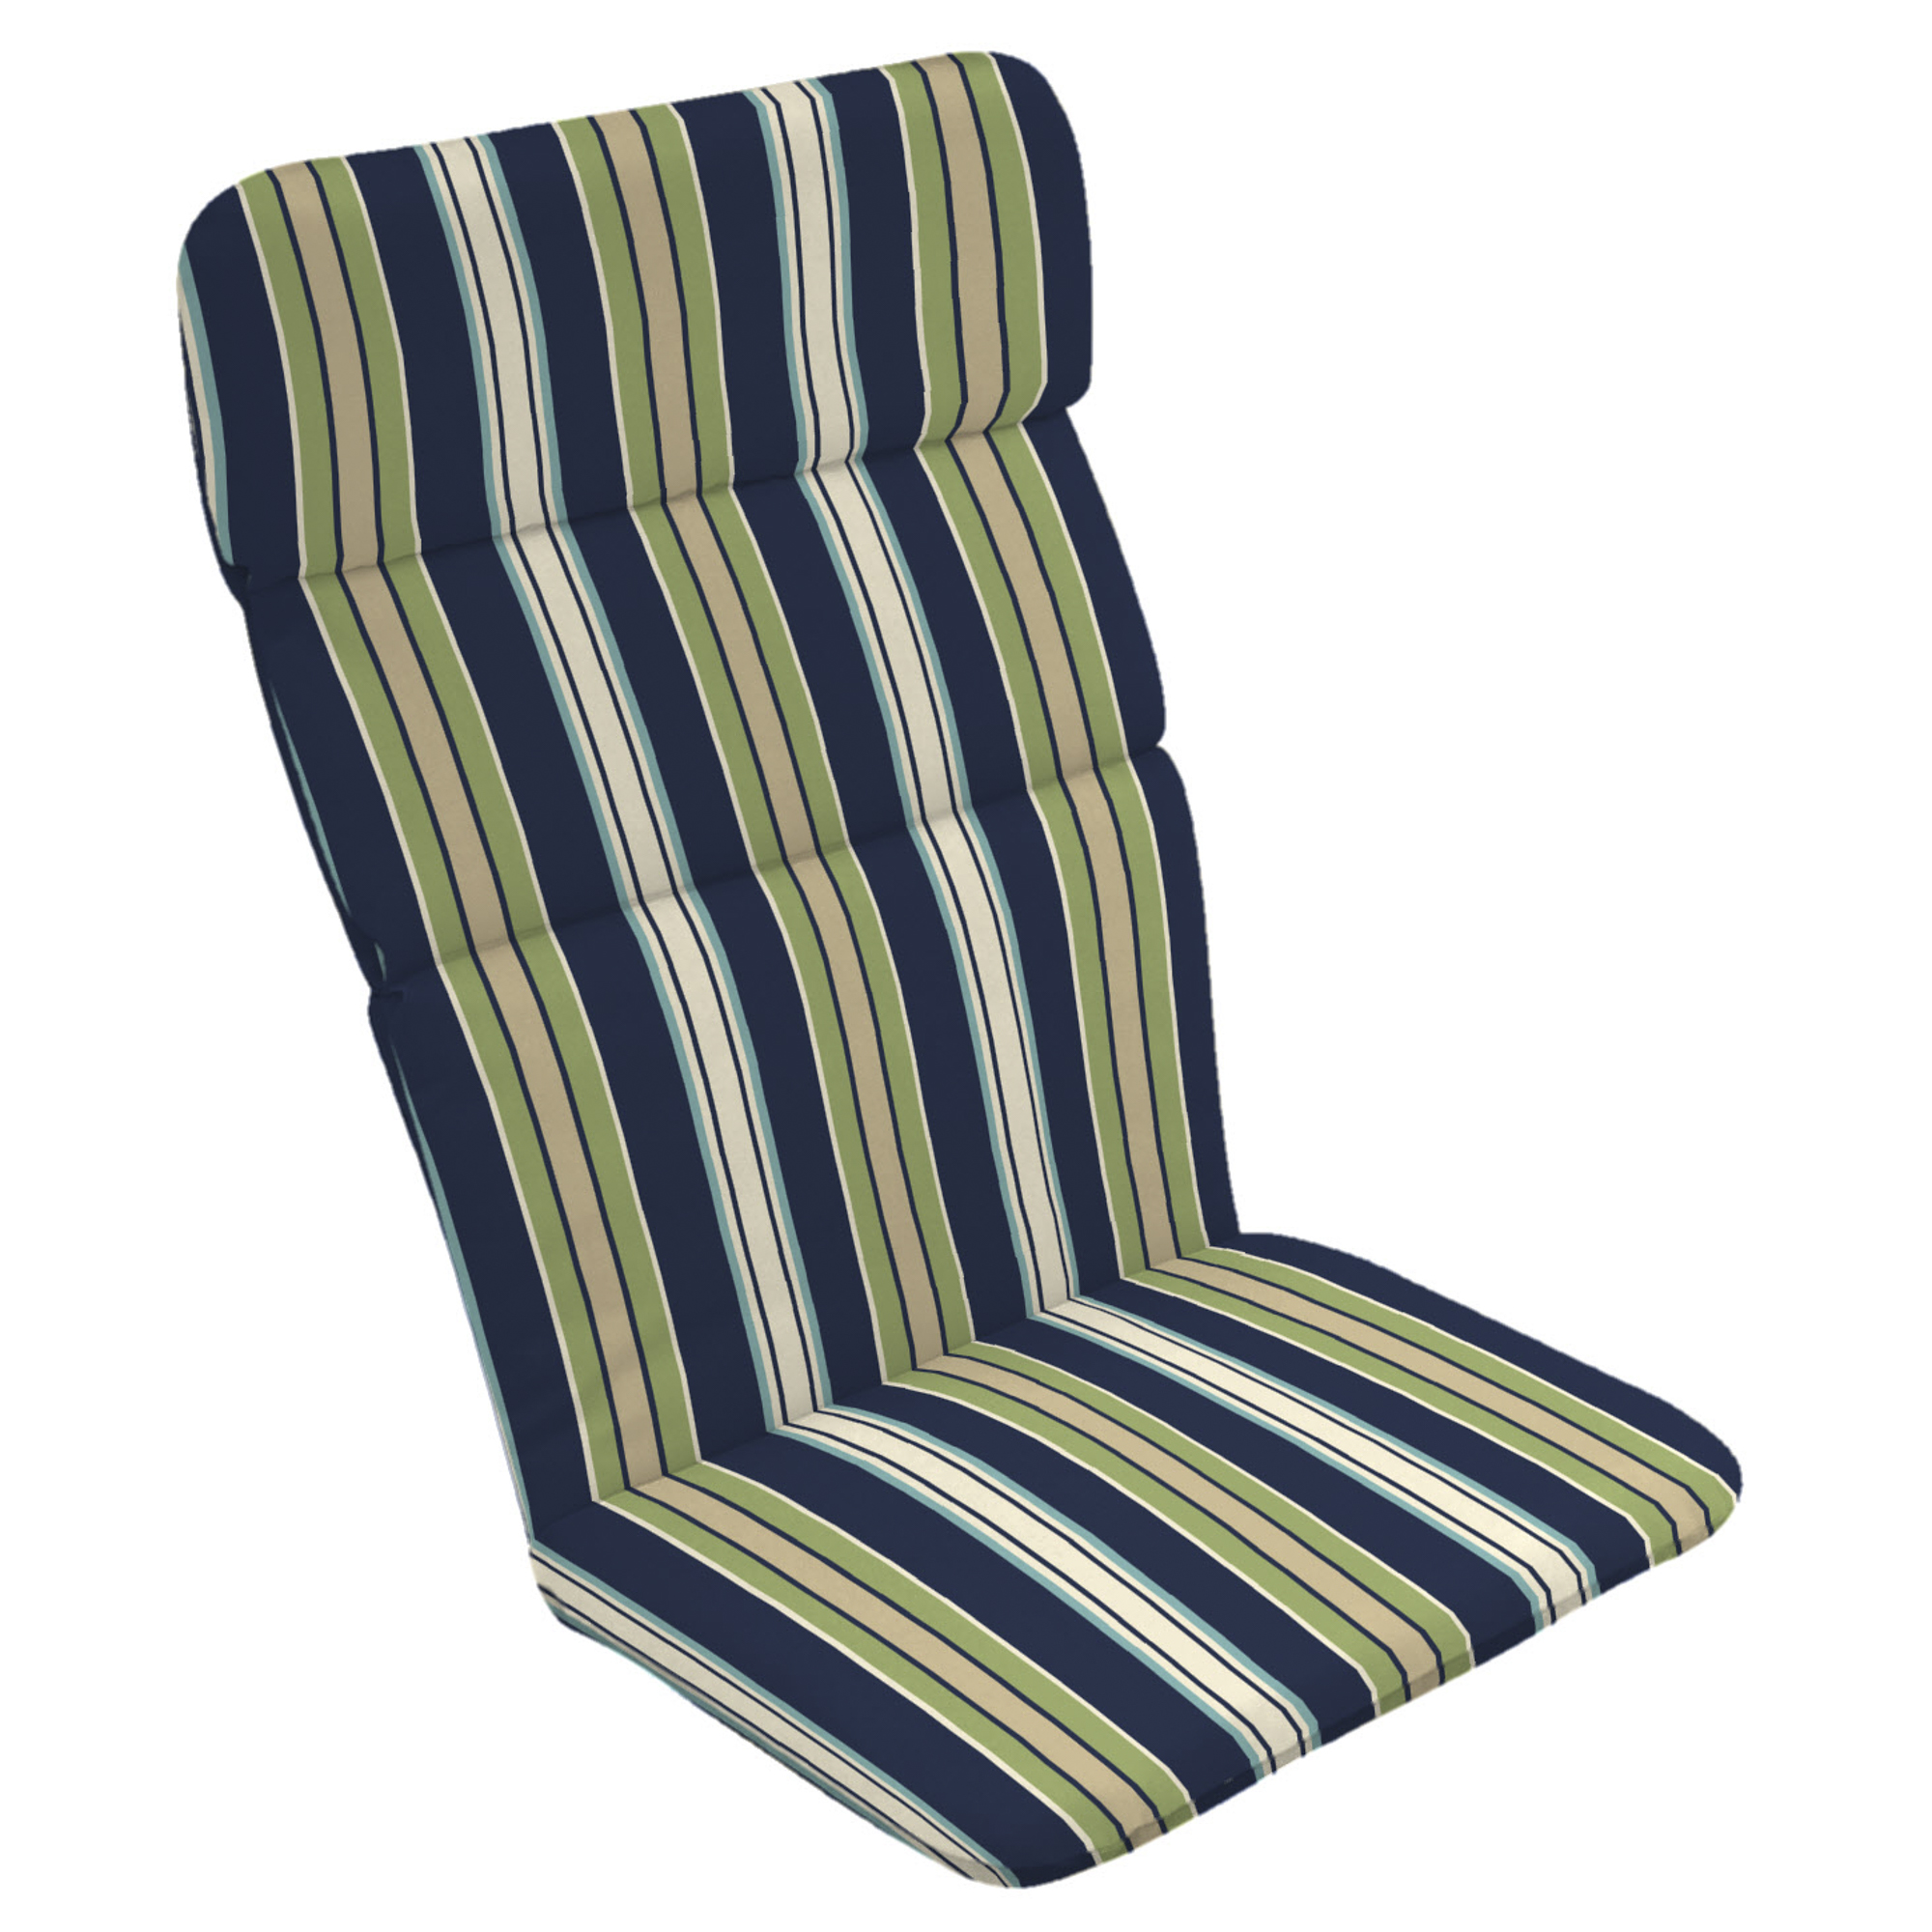 Genial Product Image Arden Selections Sapphire Clarissa Stripe Outdoor Adirondack Chair  Cushion